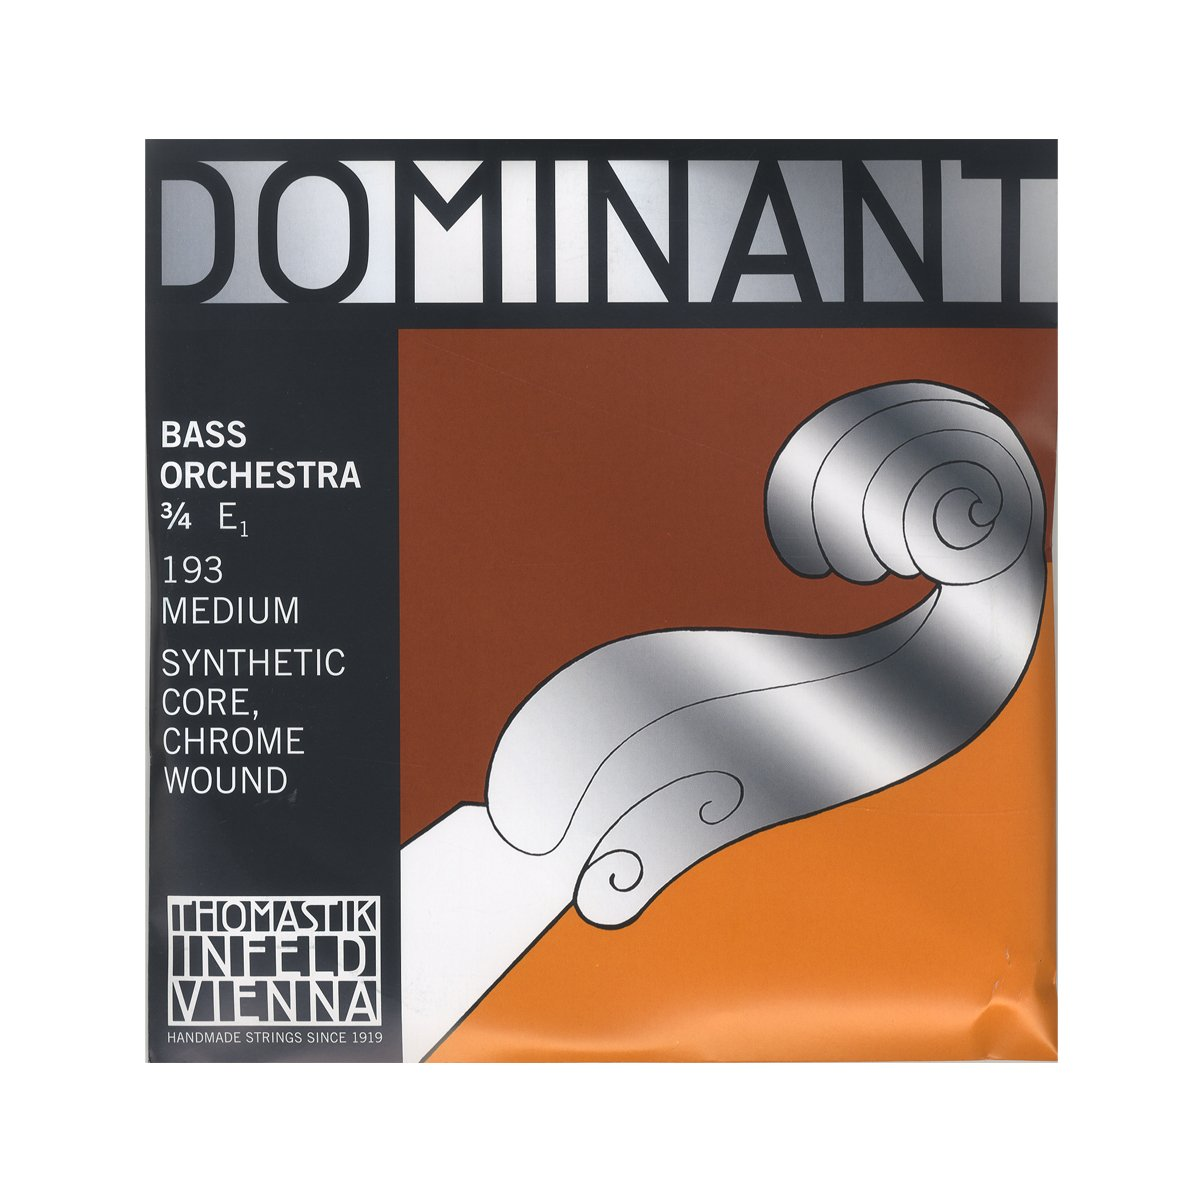 Thomastik-Infeld 193 Dominant Double Bass String, Single E String, Chromesteel Wound, Medium Tension, 3/4 Size, Orchestral Tuning